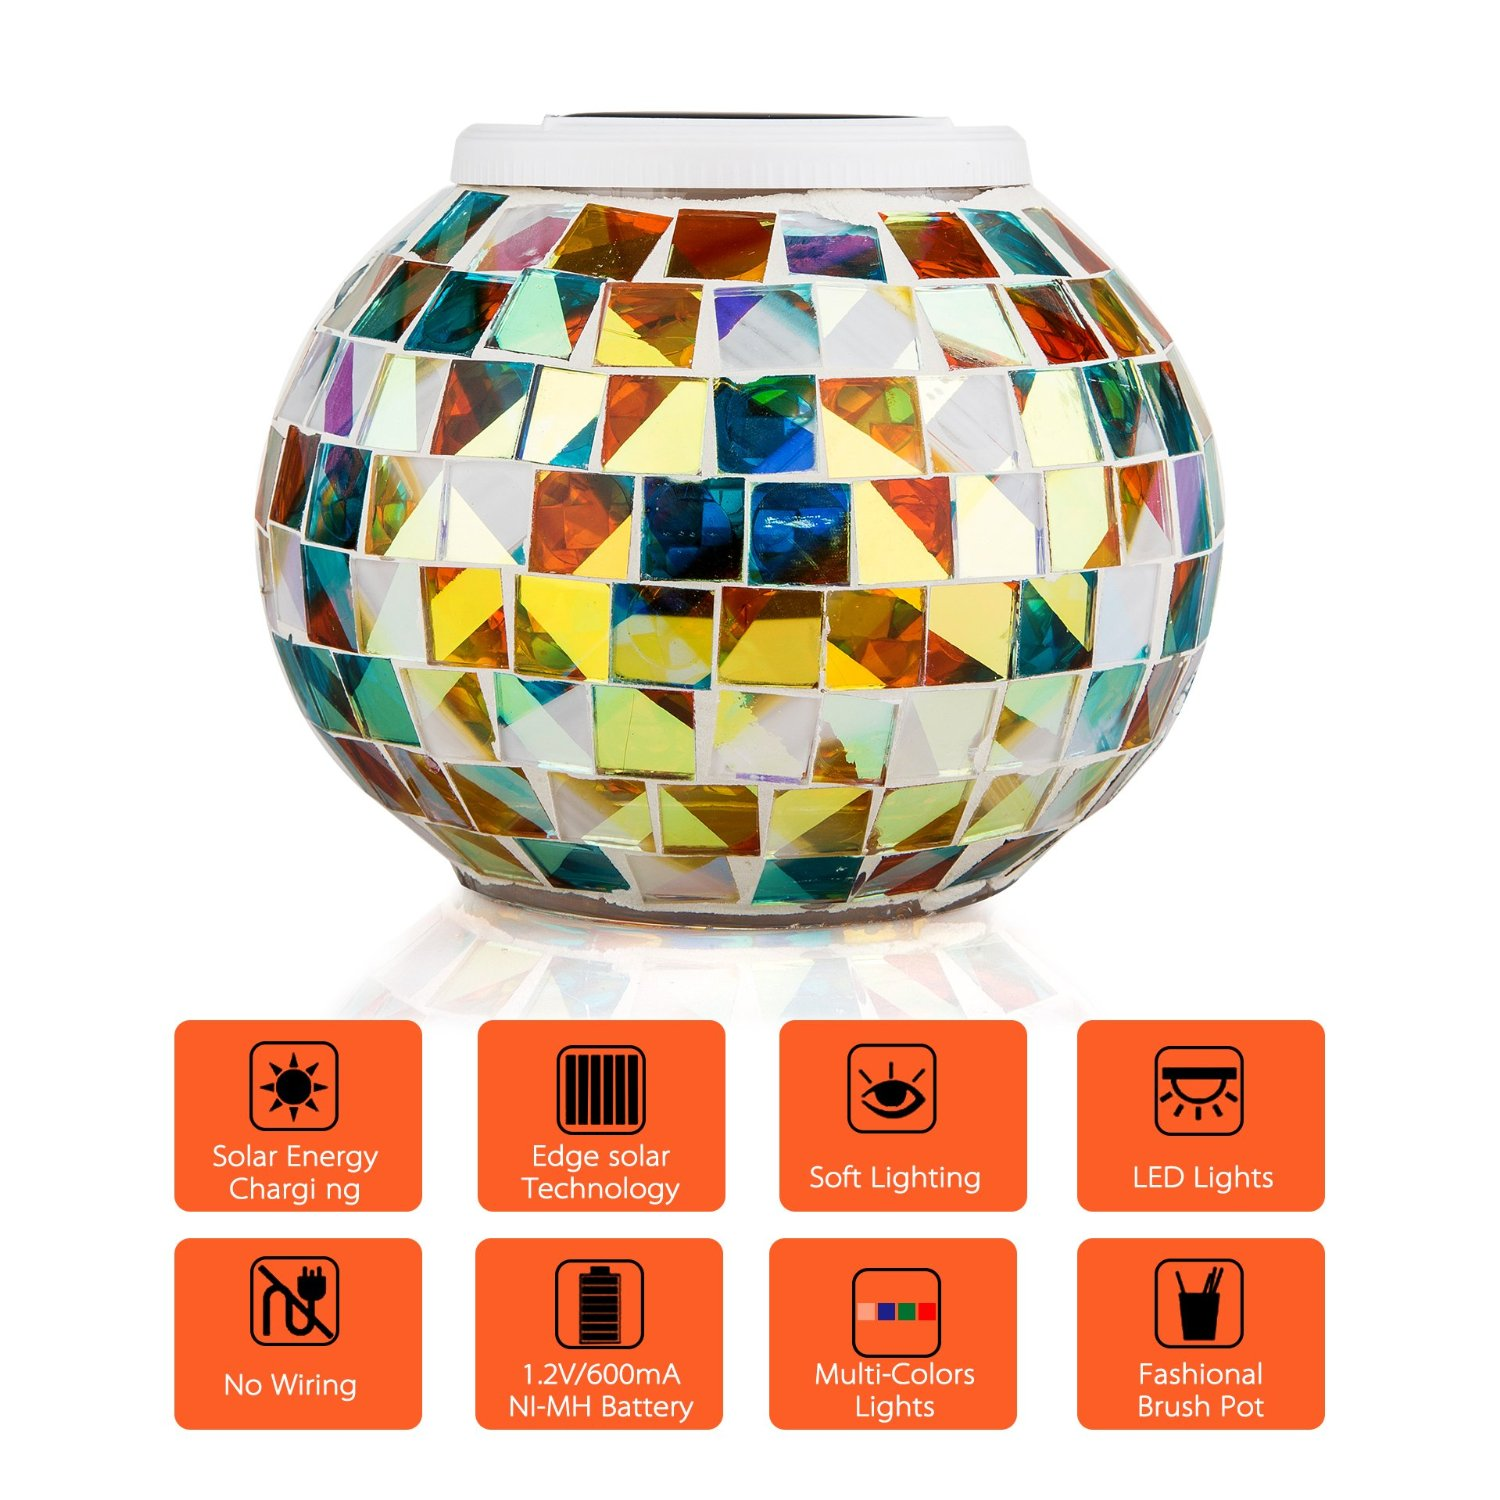 Garden Solar Power Mosaic Glass Ball Colorful LED Light Outdoor Waterproof Decoration Lamp